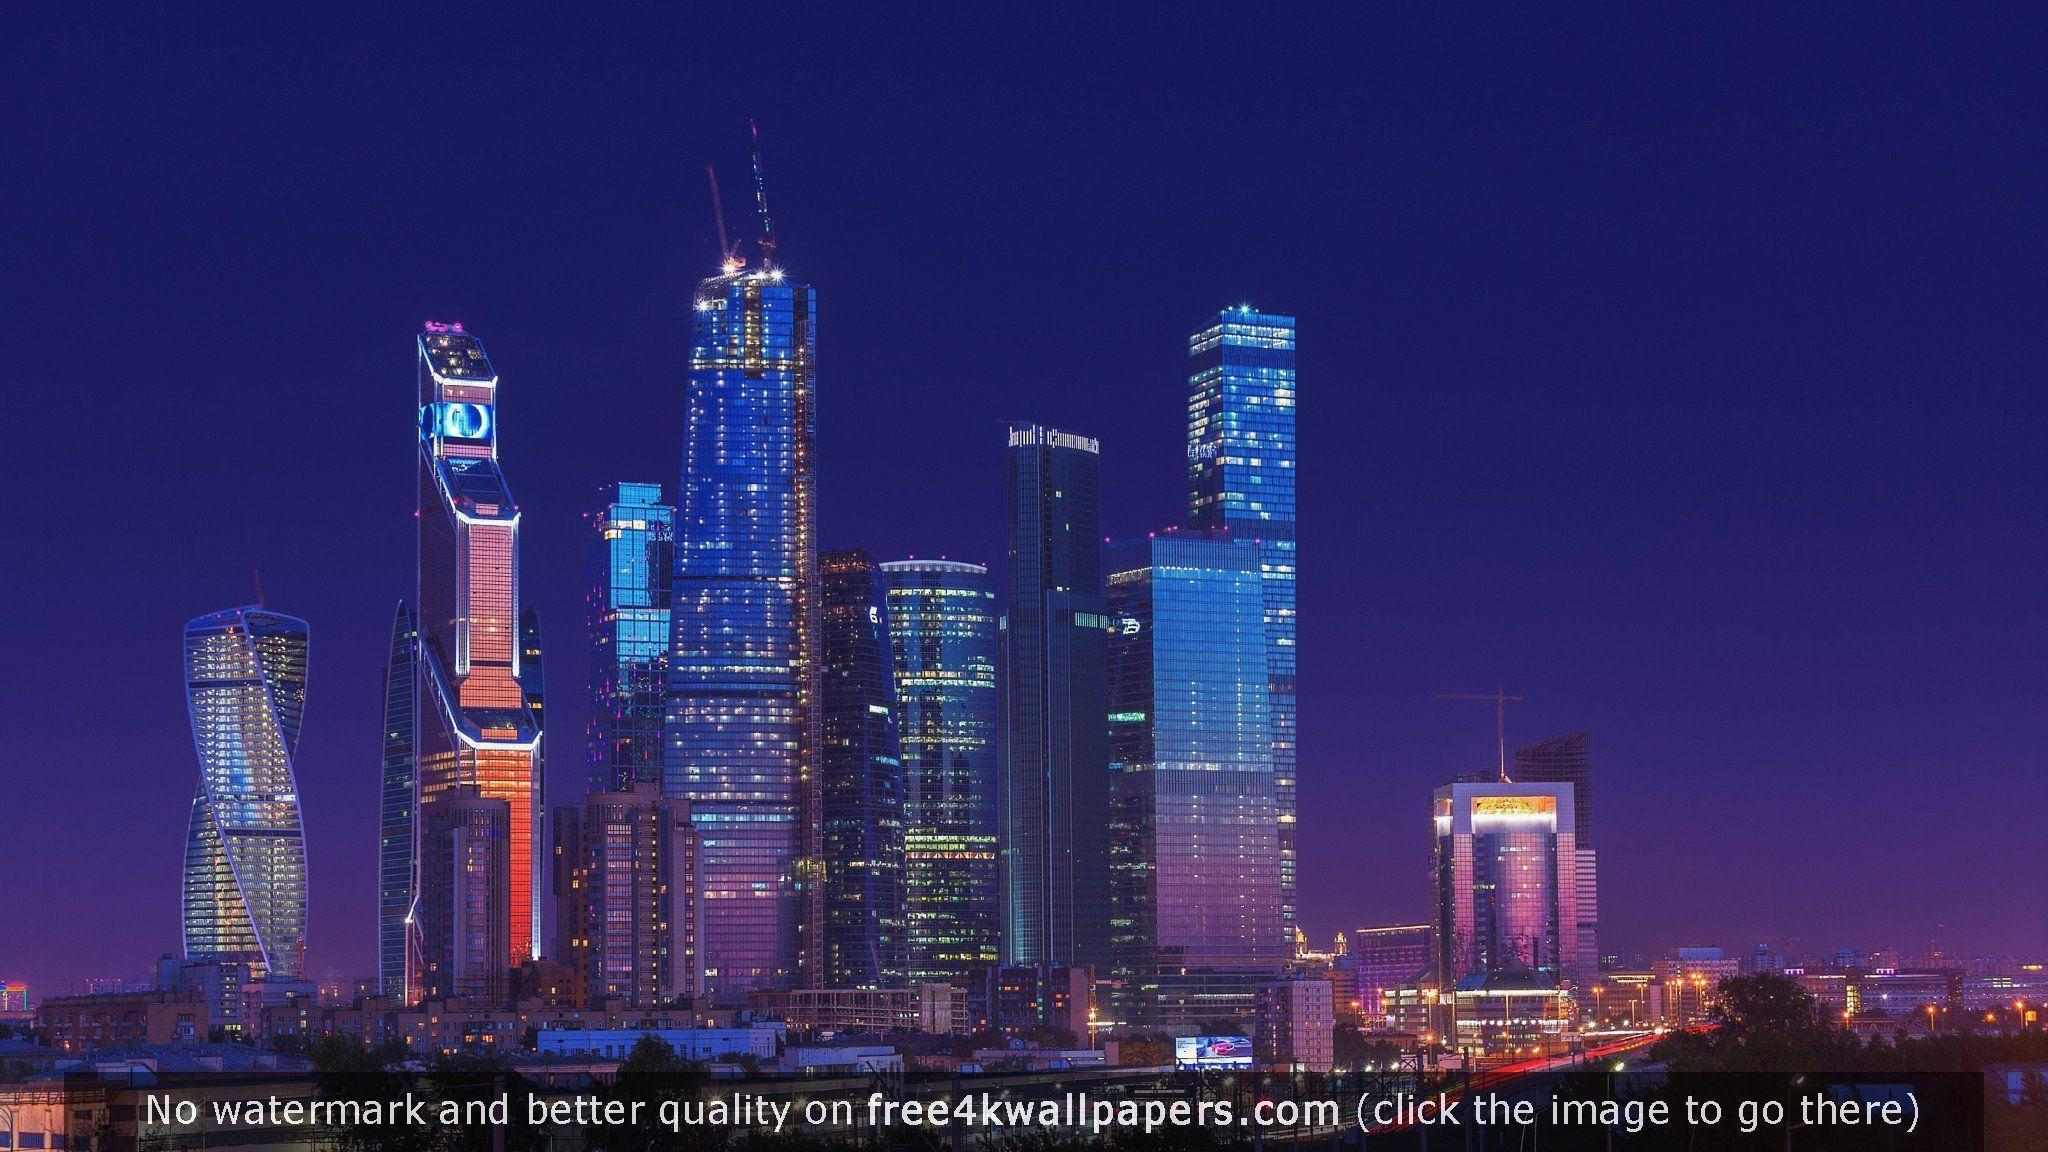 moscow wallpapers and desktop backgrounds up to 8K [7680x4320 ...